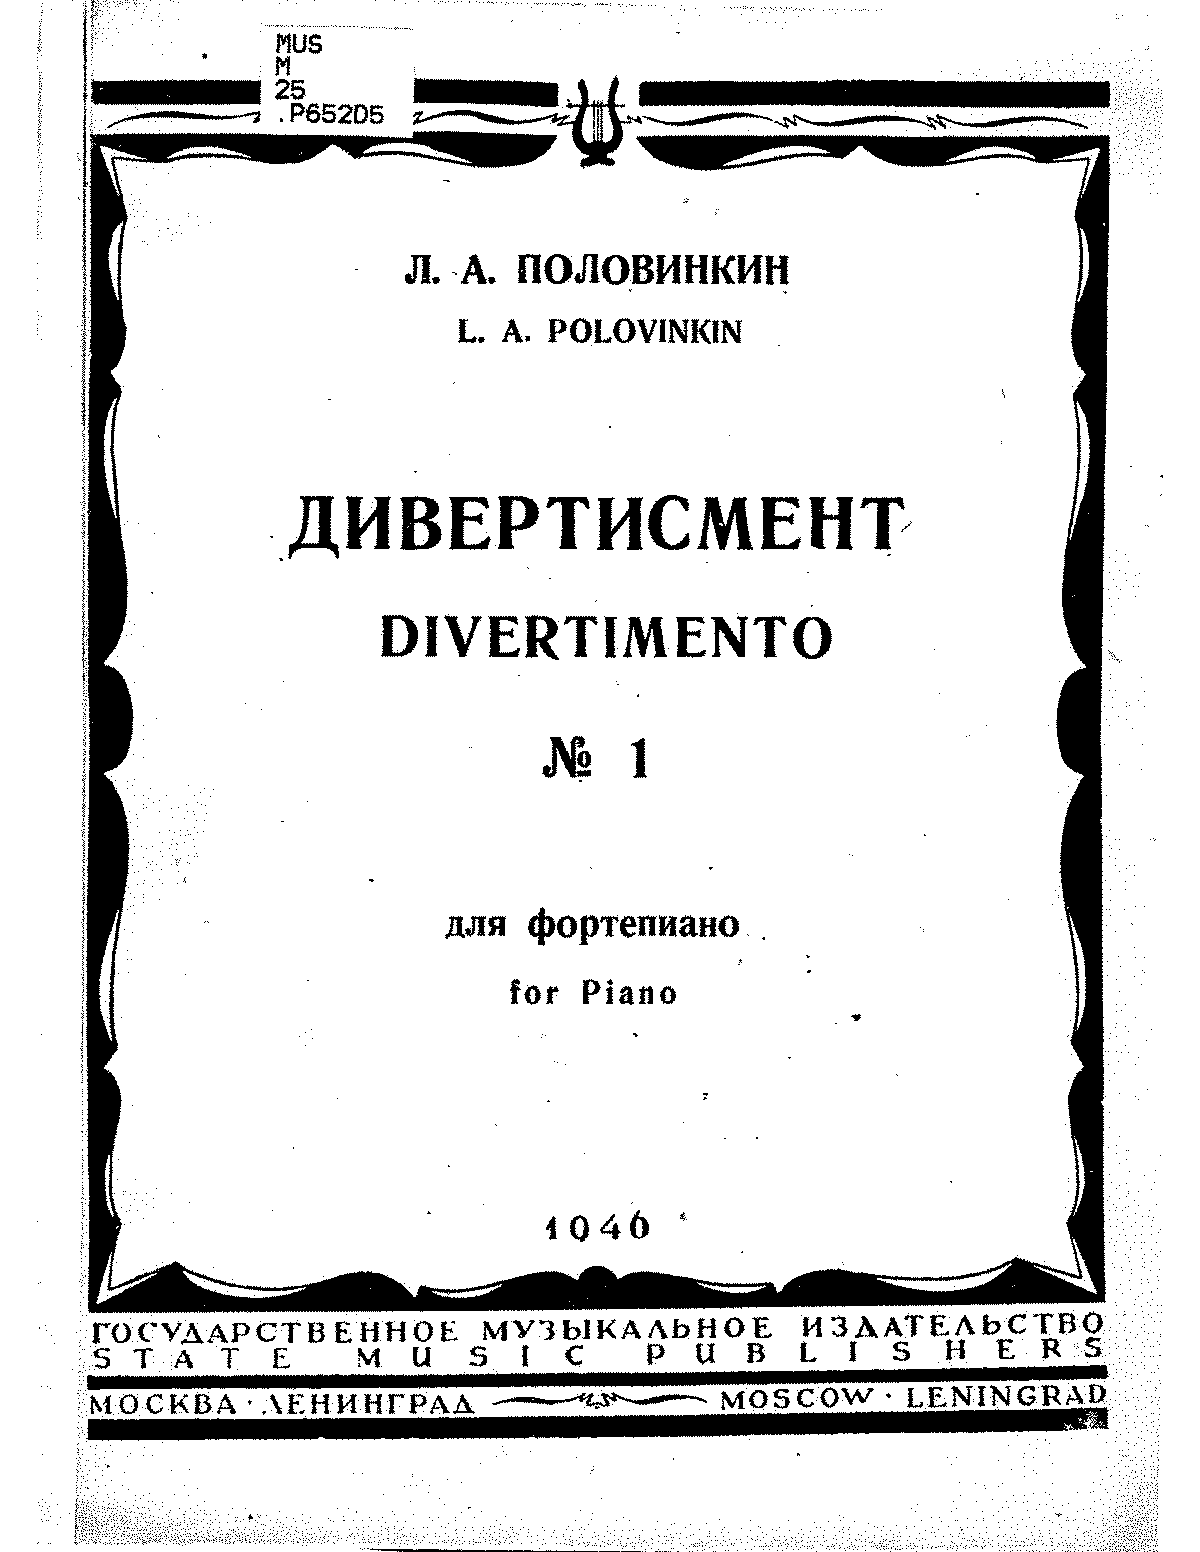 PMLP572609-Polovinkin Leonid - Divertissement No. 1 (1946).pdf